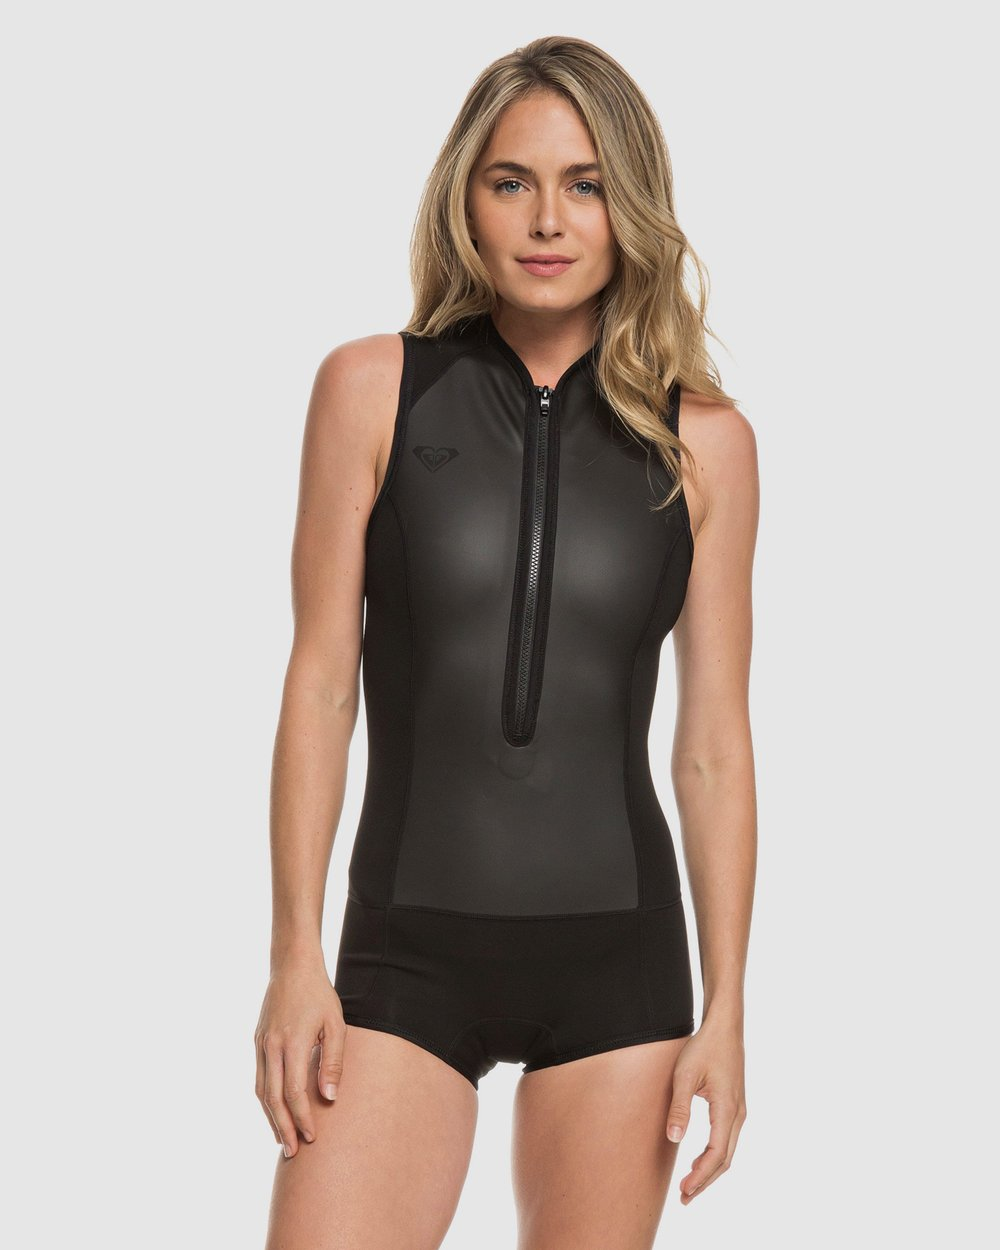 Womens 1mm Satin Front Zip Short John Springsuit Wetsuit by Roxy Online  15c763368